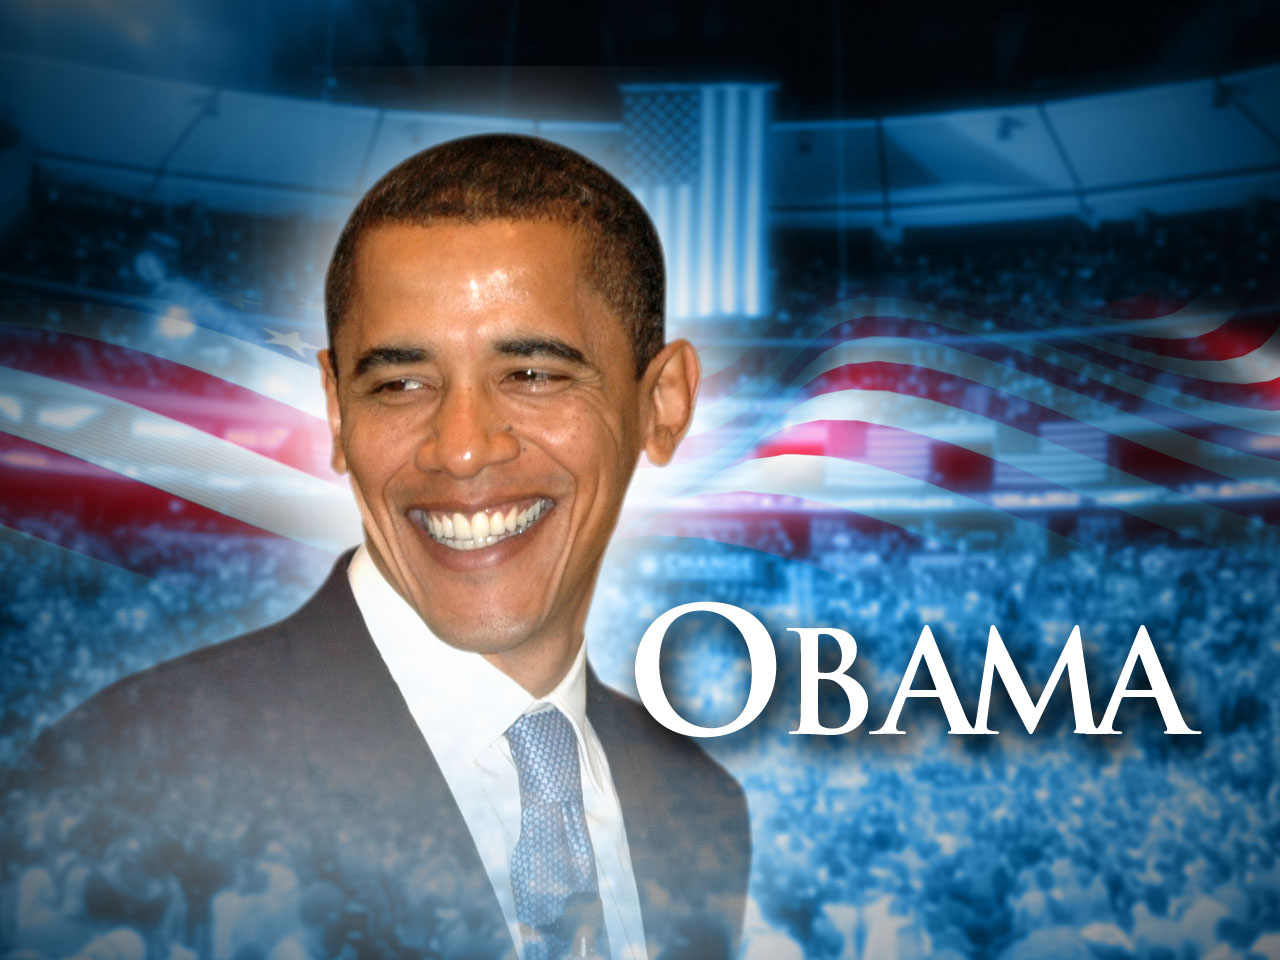 Barack Hussein Obama Wallpapers 1280x960